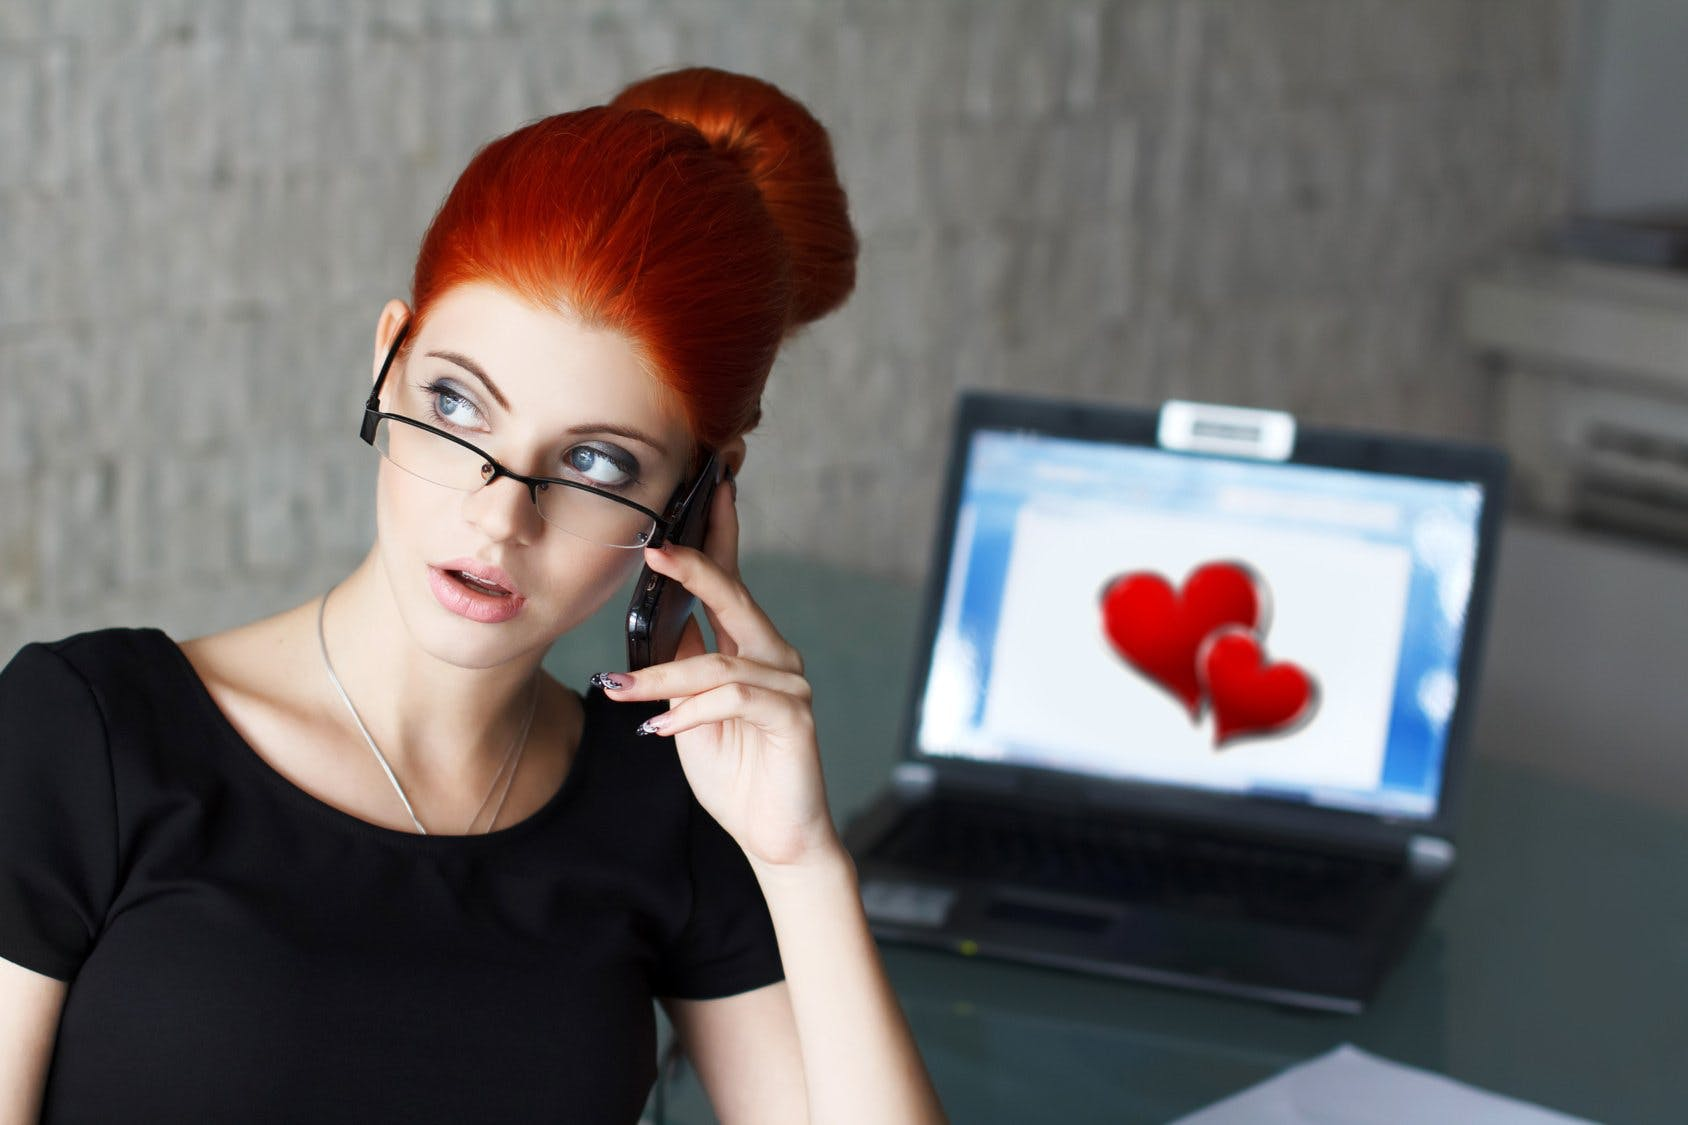 5 Cunsiglii To Make A Dating Hijo Great First Online